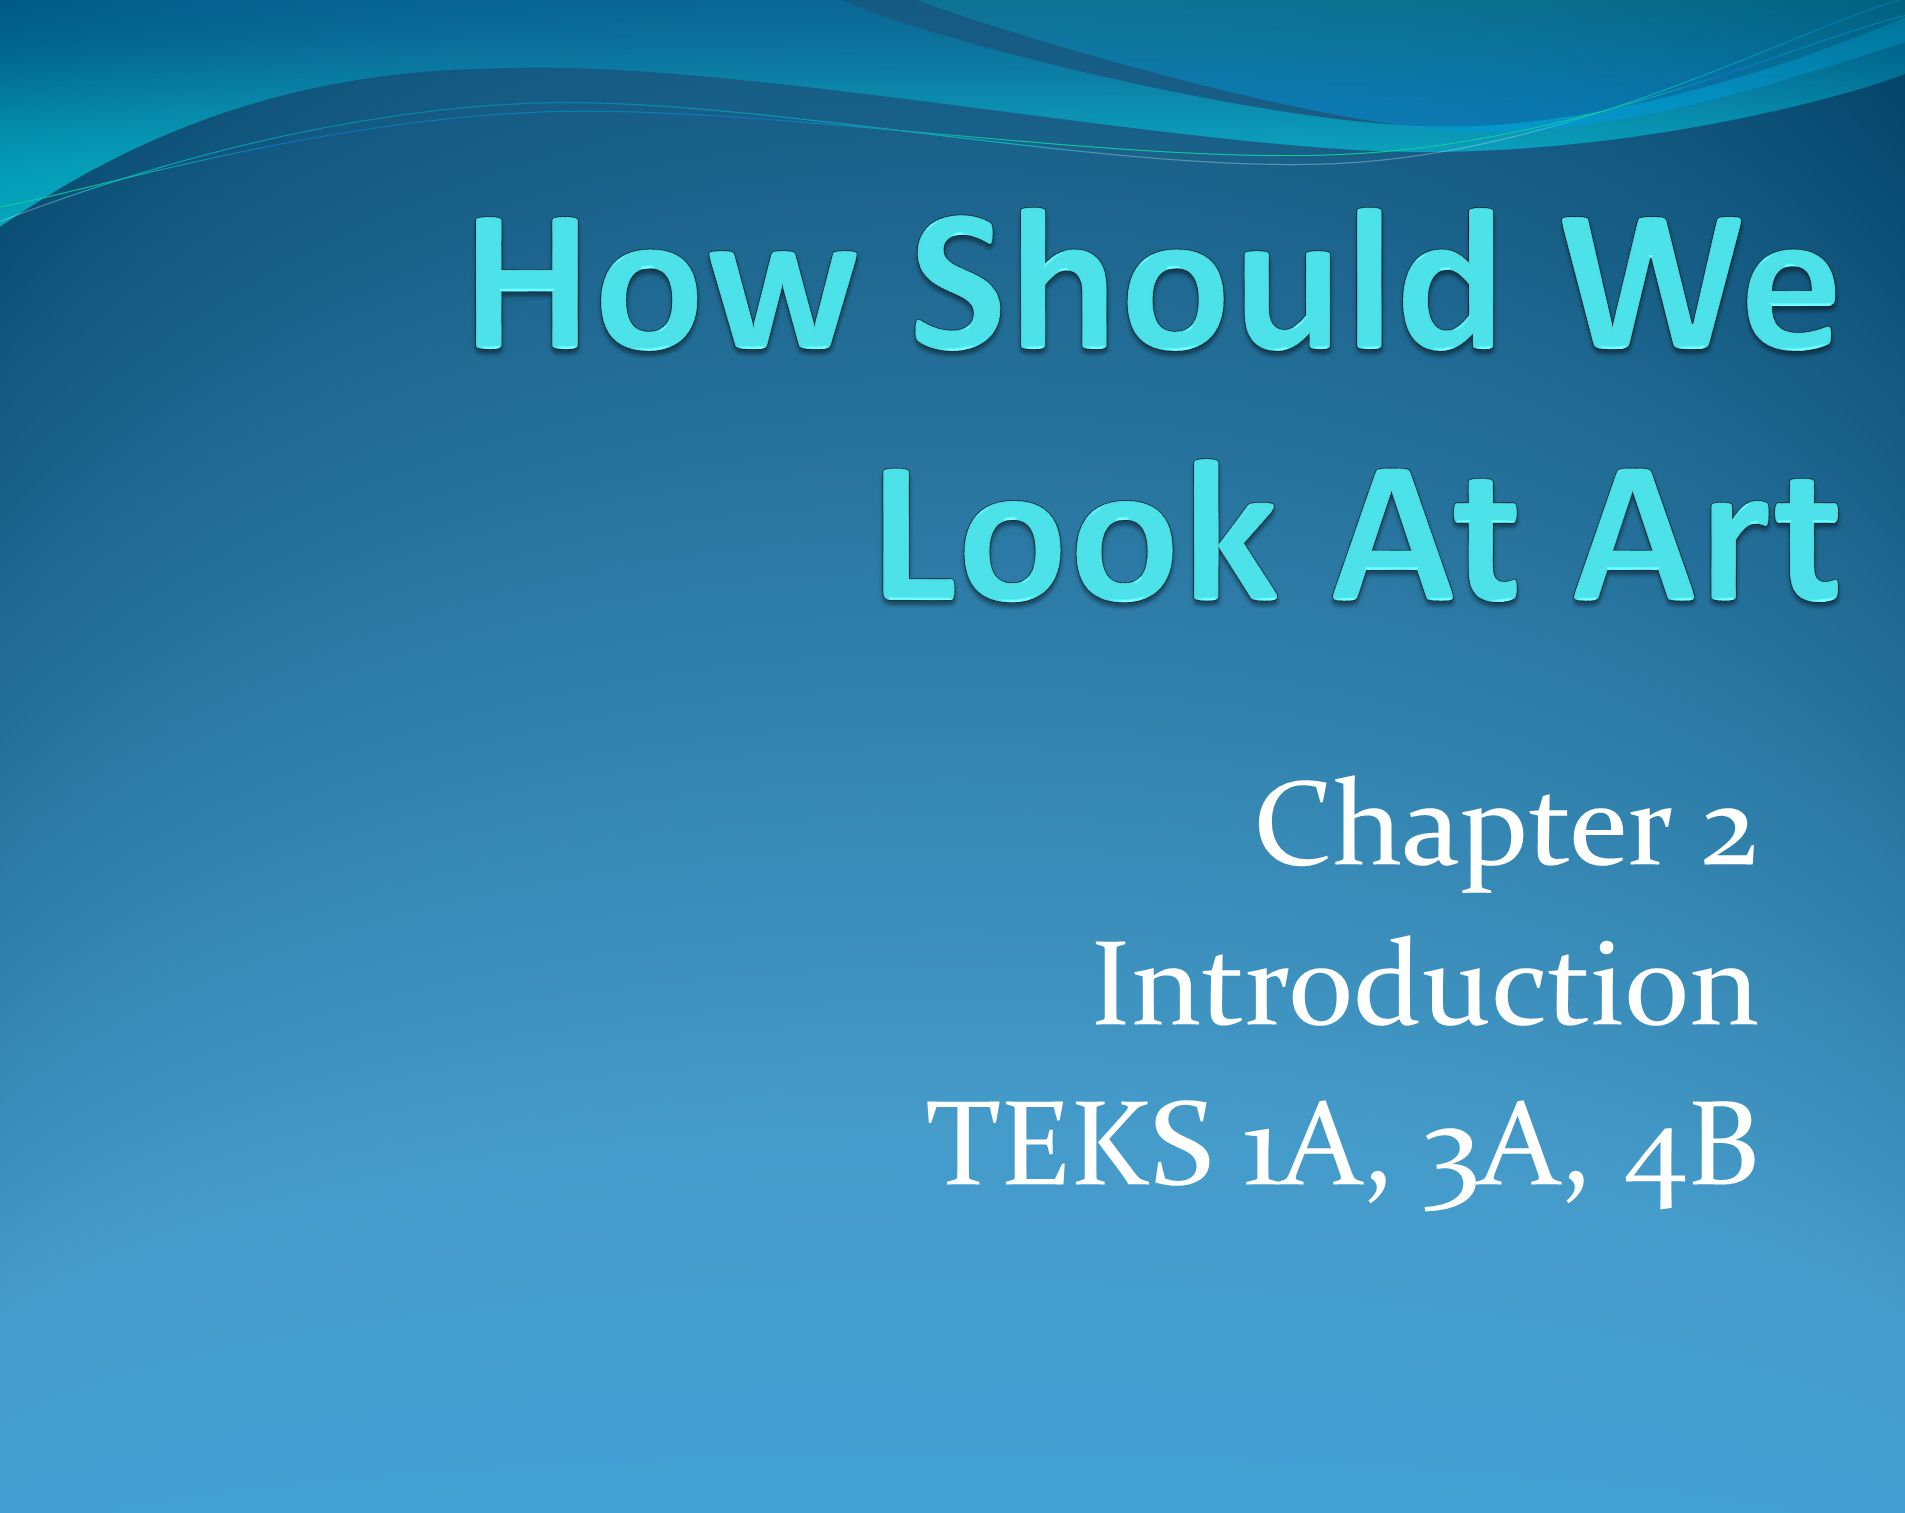 Chapter 2 Introduction TEKS 1A, 3A, 4B